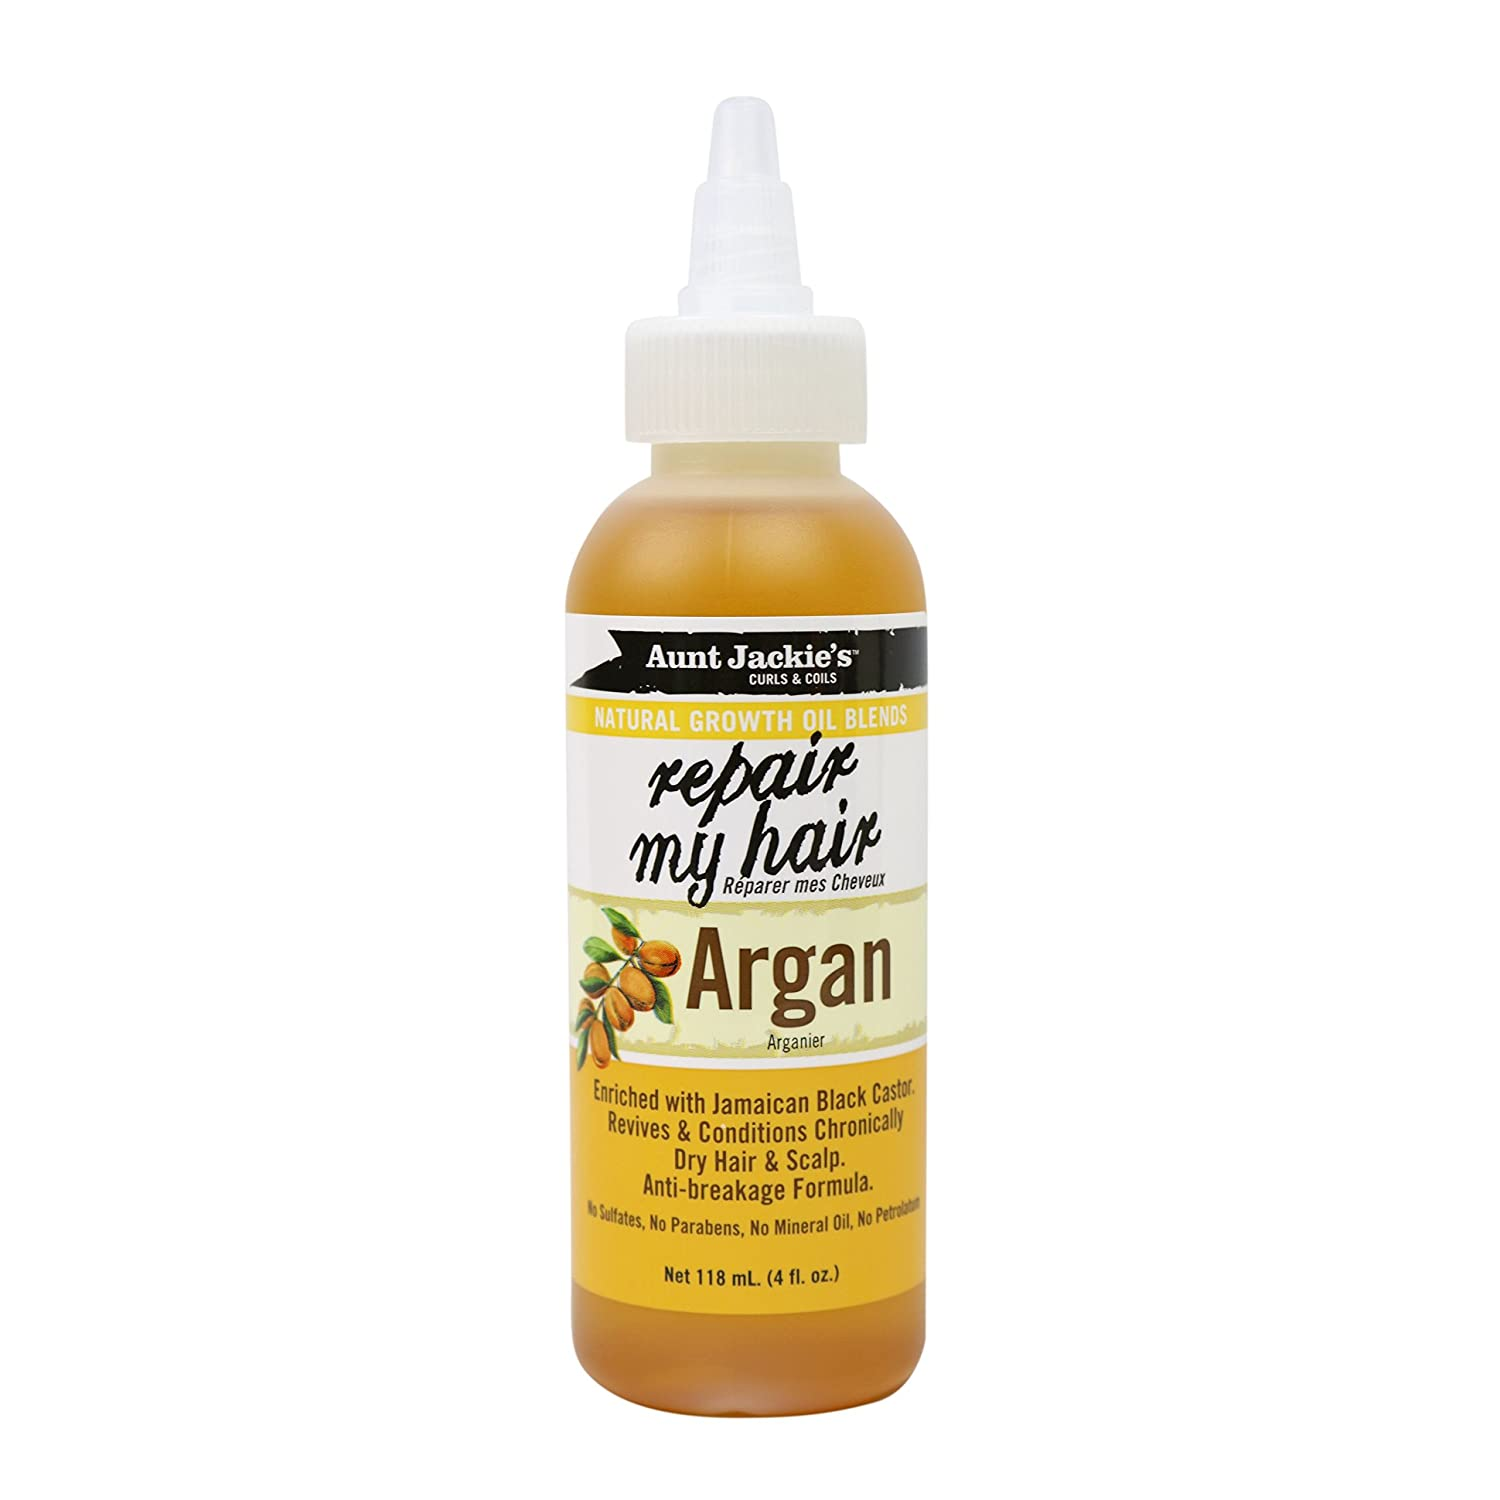 Aunt Jackie's Natural Growth Oil Blends Repair My Hair, Enriched with Jamaican Black Castor and Argan Oil, Revives and Conditions Chronically Dry Hair and Scalp, 4 Ounce Twist Spout Bottle